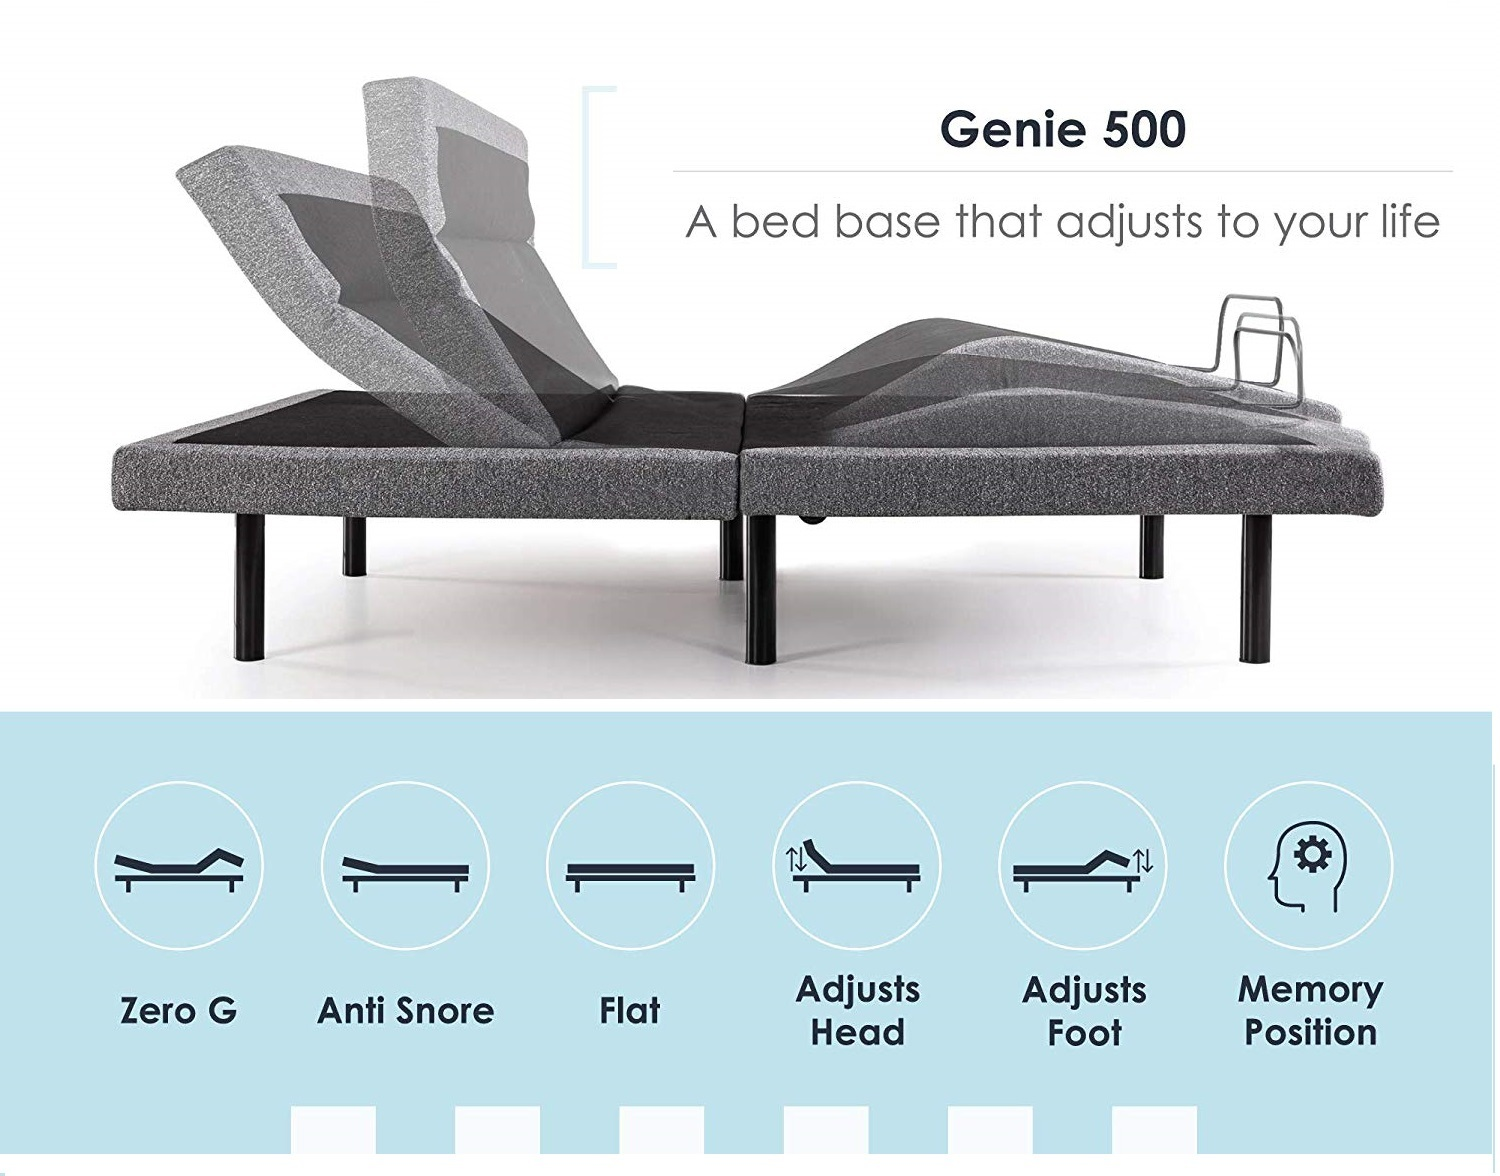 Mellow Genie Adjustable Bed Reviews - Adjustments